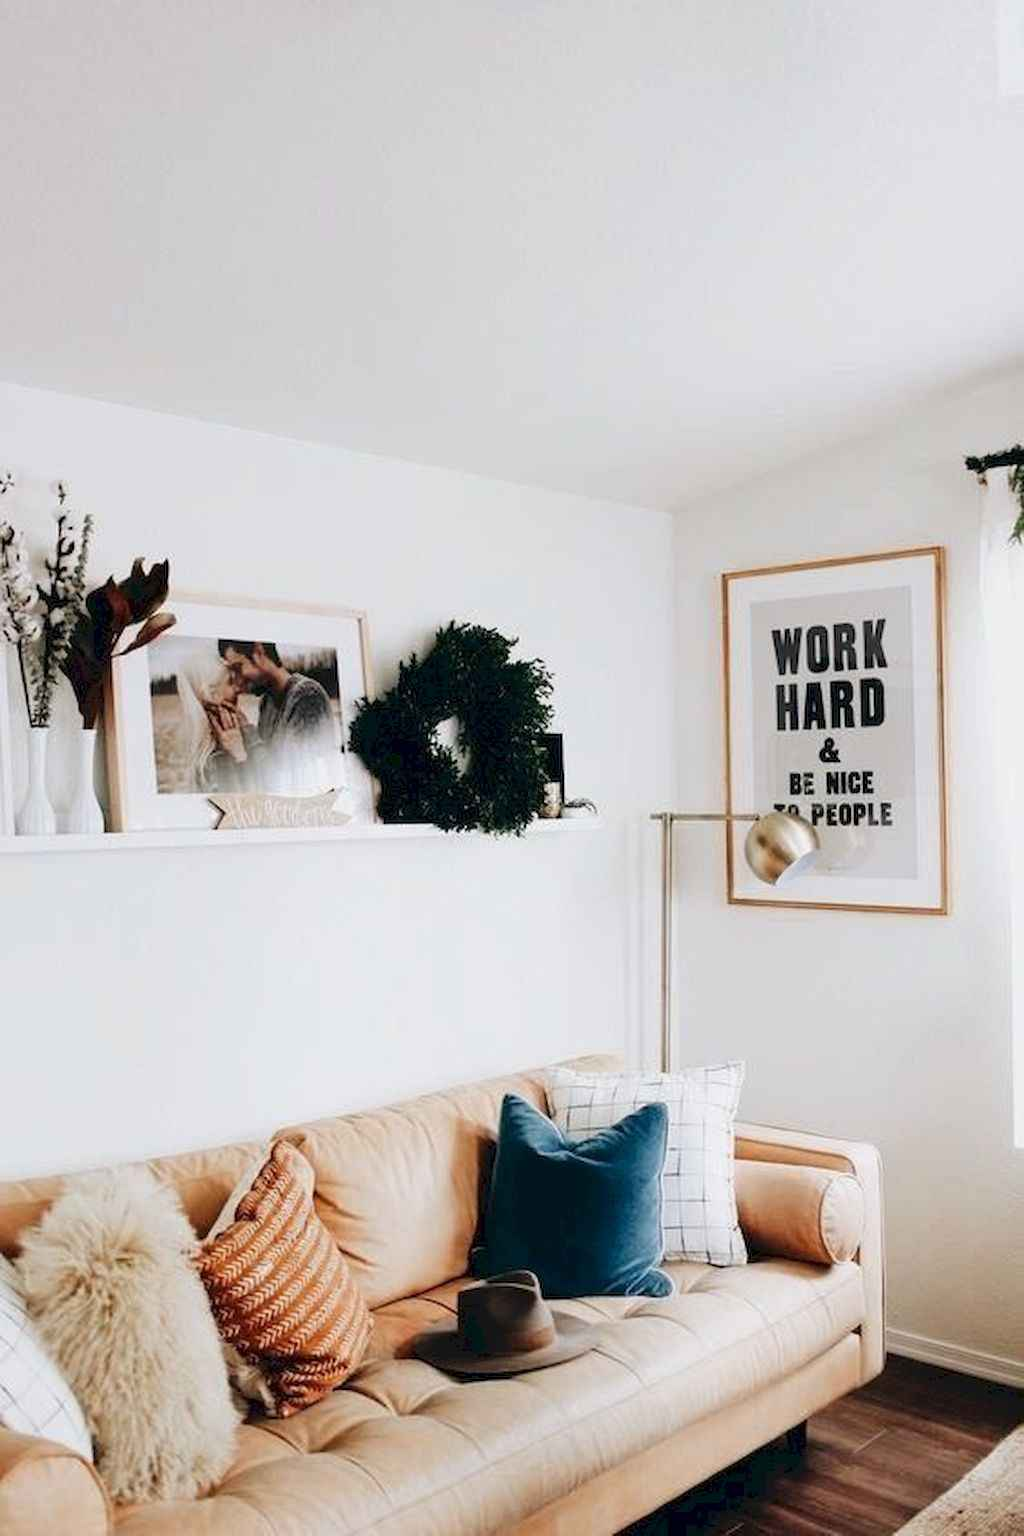 Clever college apartment decorating ideas on a budget (49)